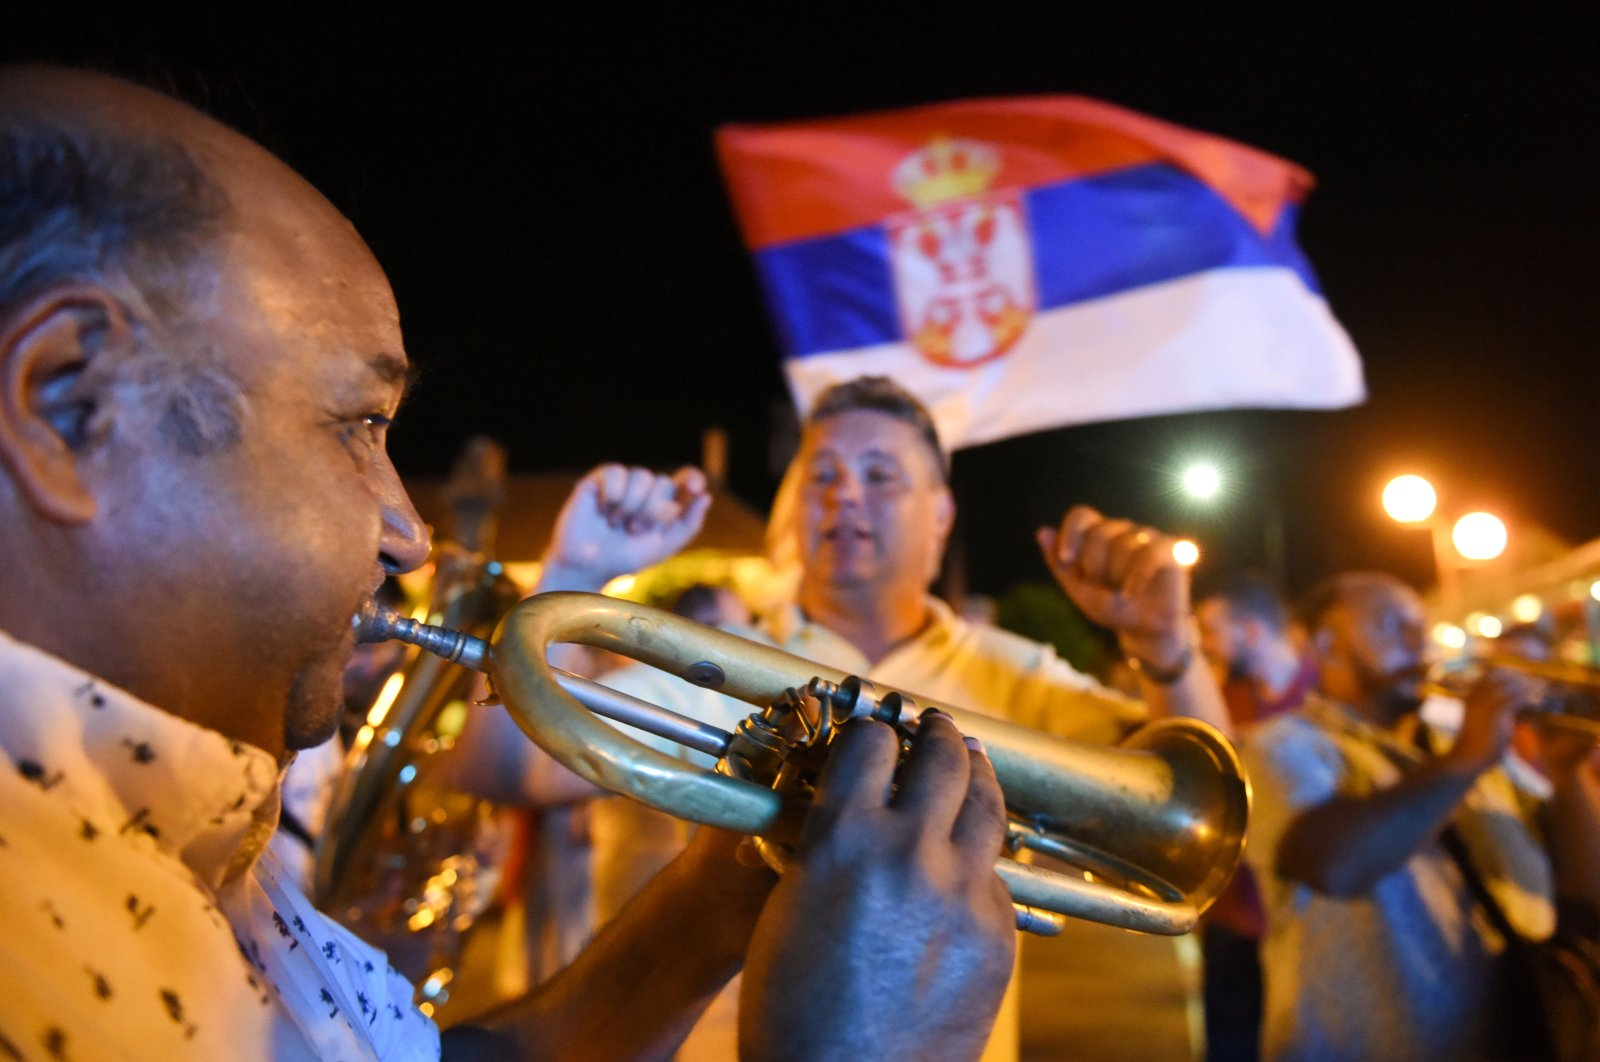 People sing and dance on a street during the annual brass band festival, in Guca, Serbia, Aug. 13, 2021. (Reuters Photo)